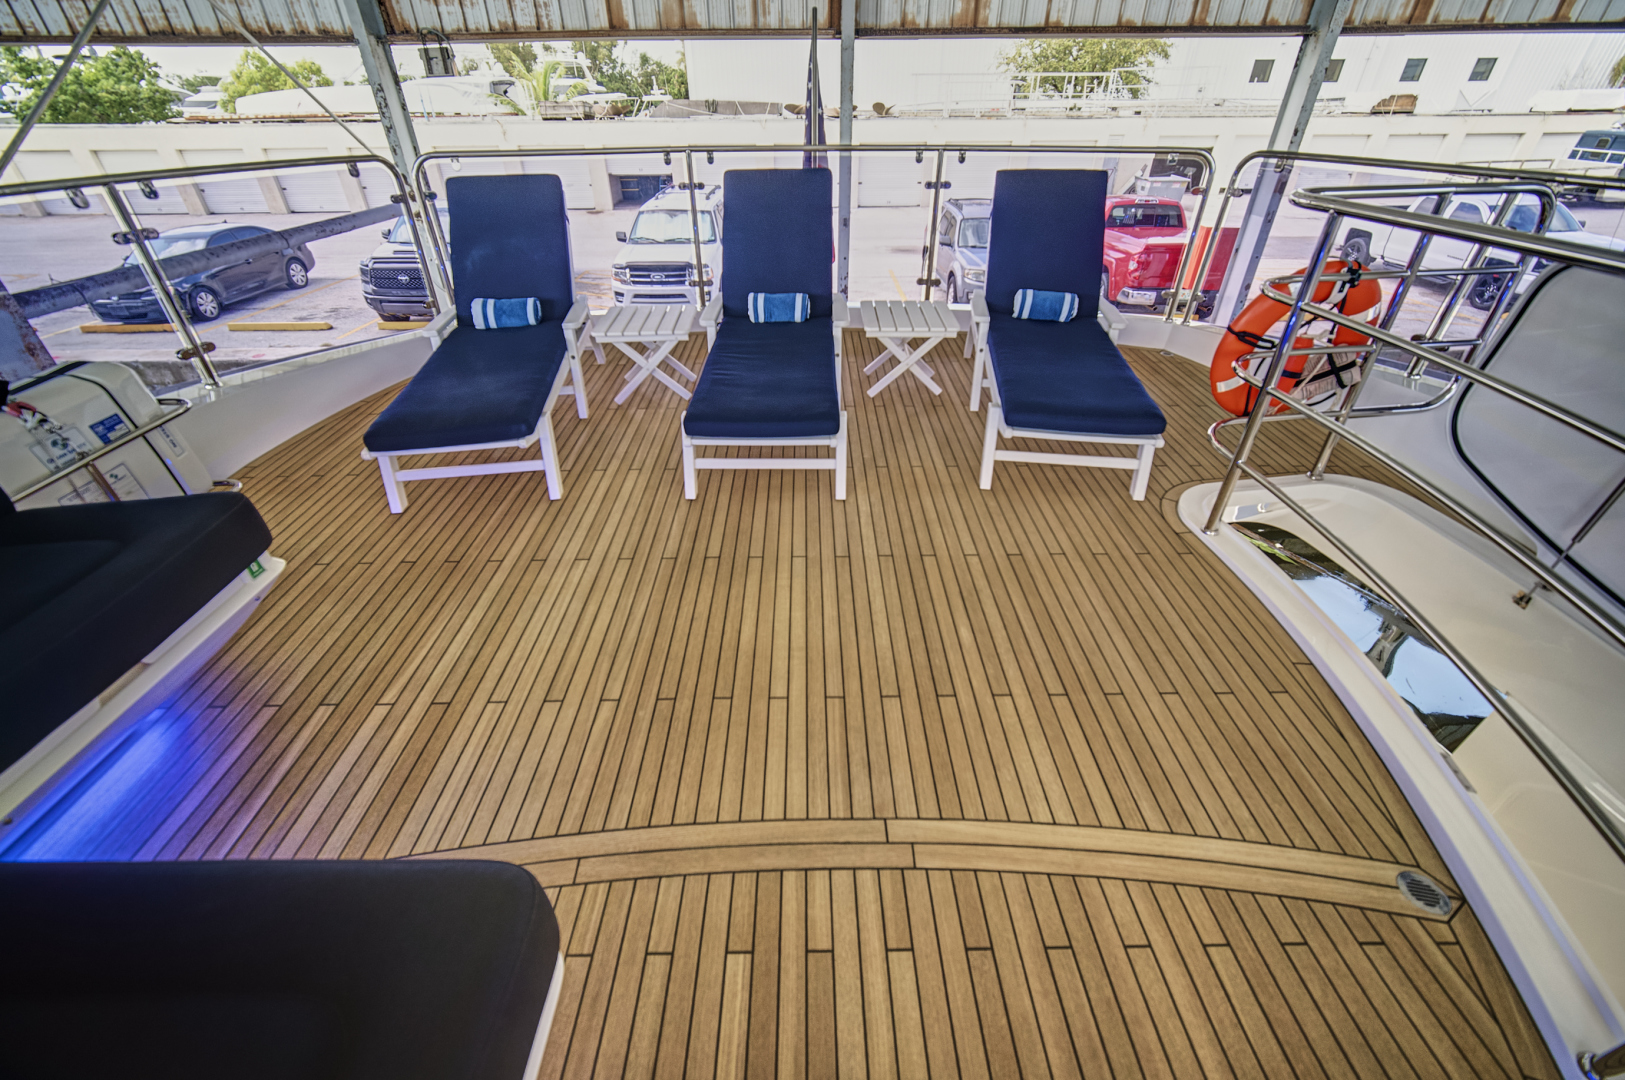 Sunseeker-86 Yacht 2019-Its Noon Somewhere Fort Lauderdale-Florida-United States-1556657 | Thumbnail